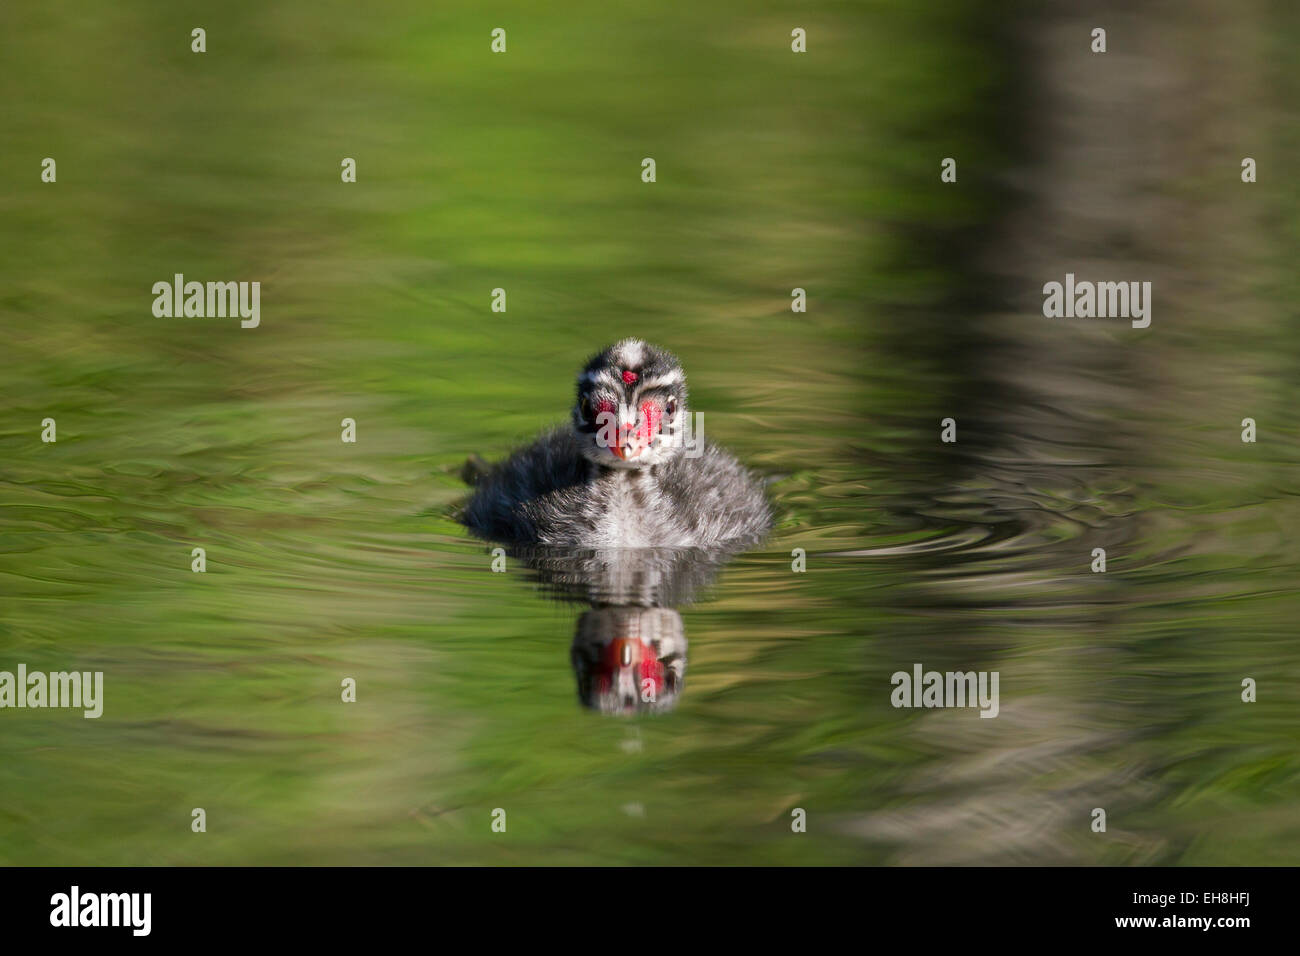 Horned grebe (Podiceps auritus) chick swimming in lake - Stock Image